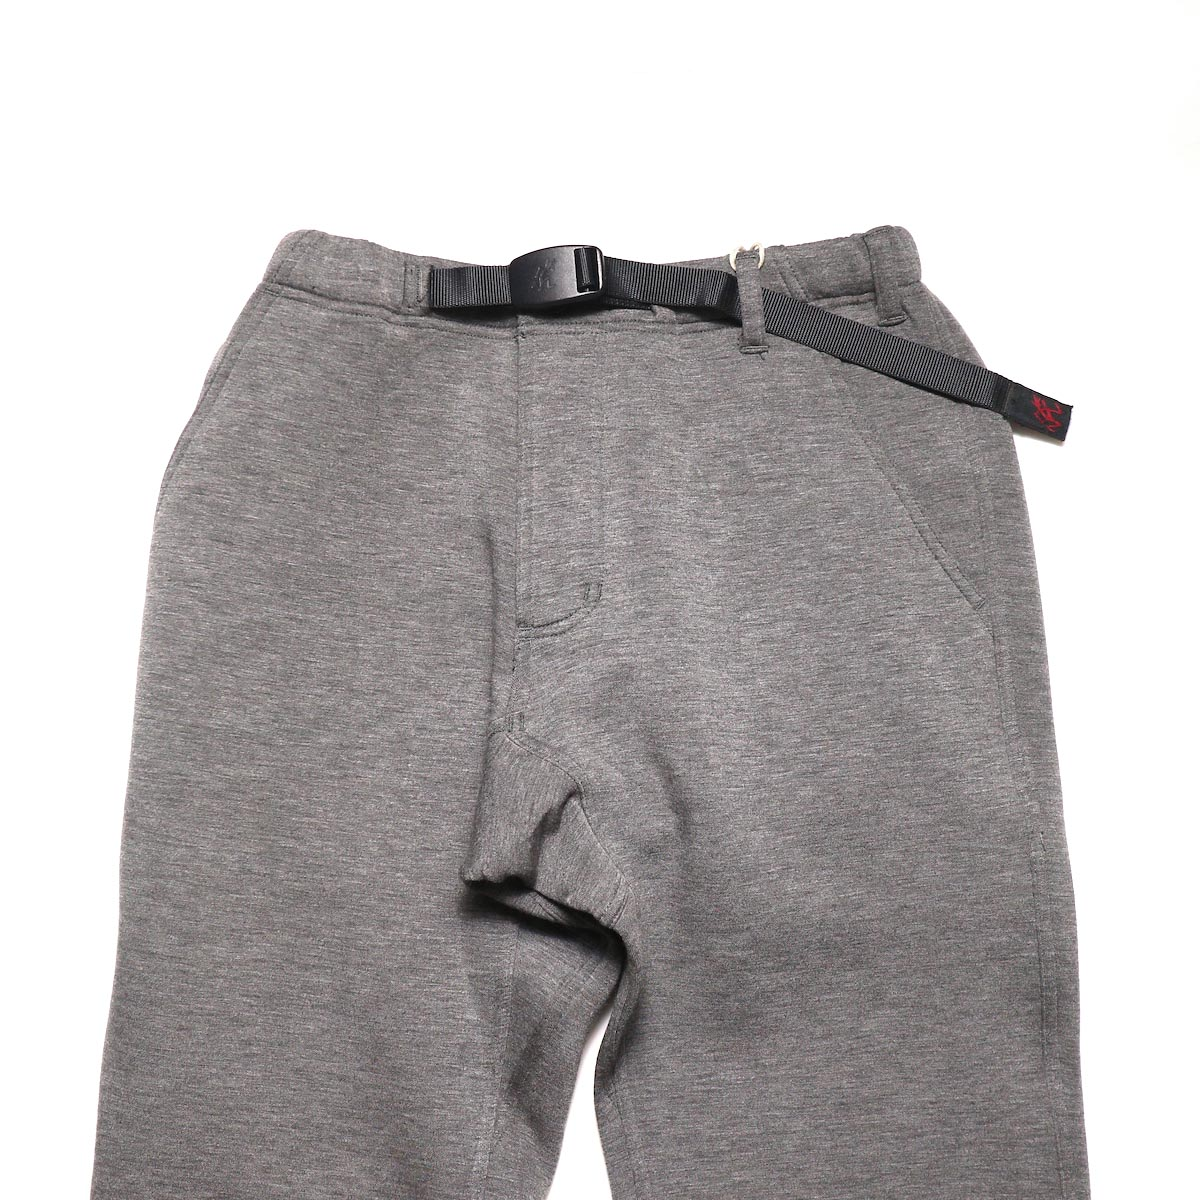 GRAMICCI / TECK KNIT SLIM FIT PANTS (Heather Charcoal)ウエスト